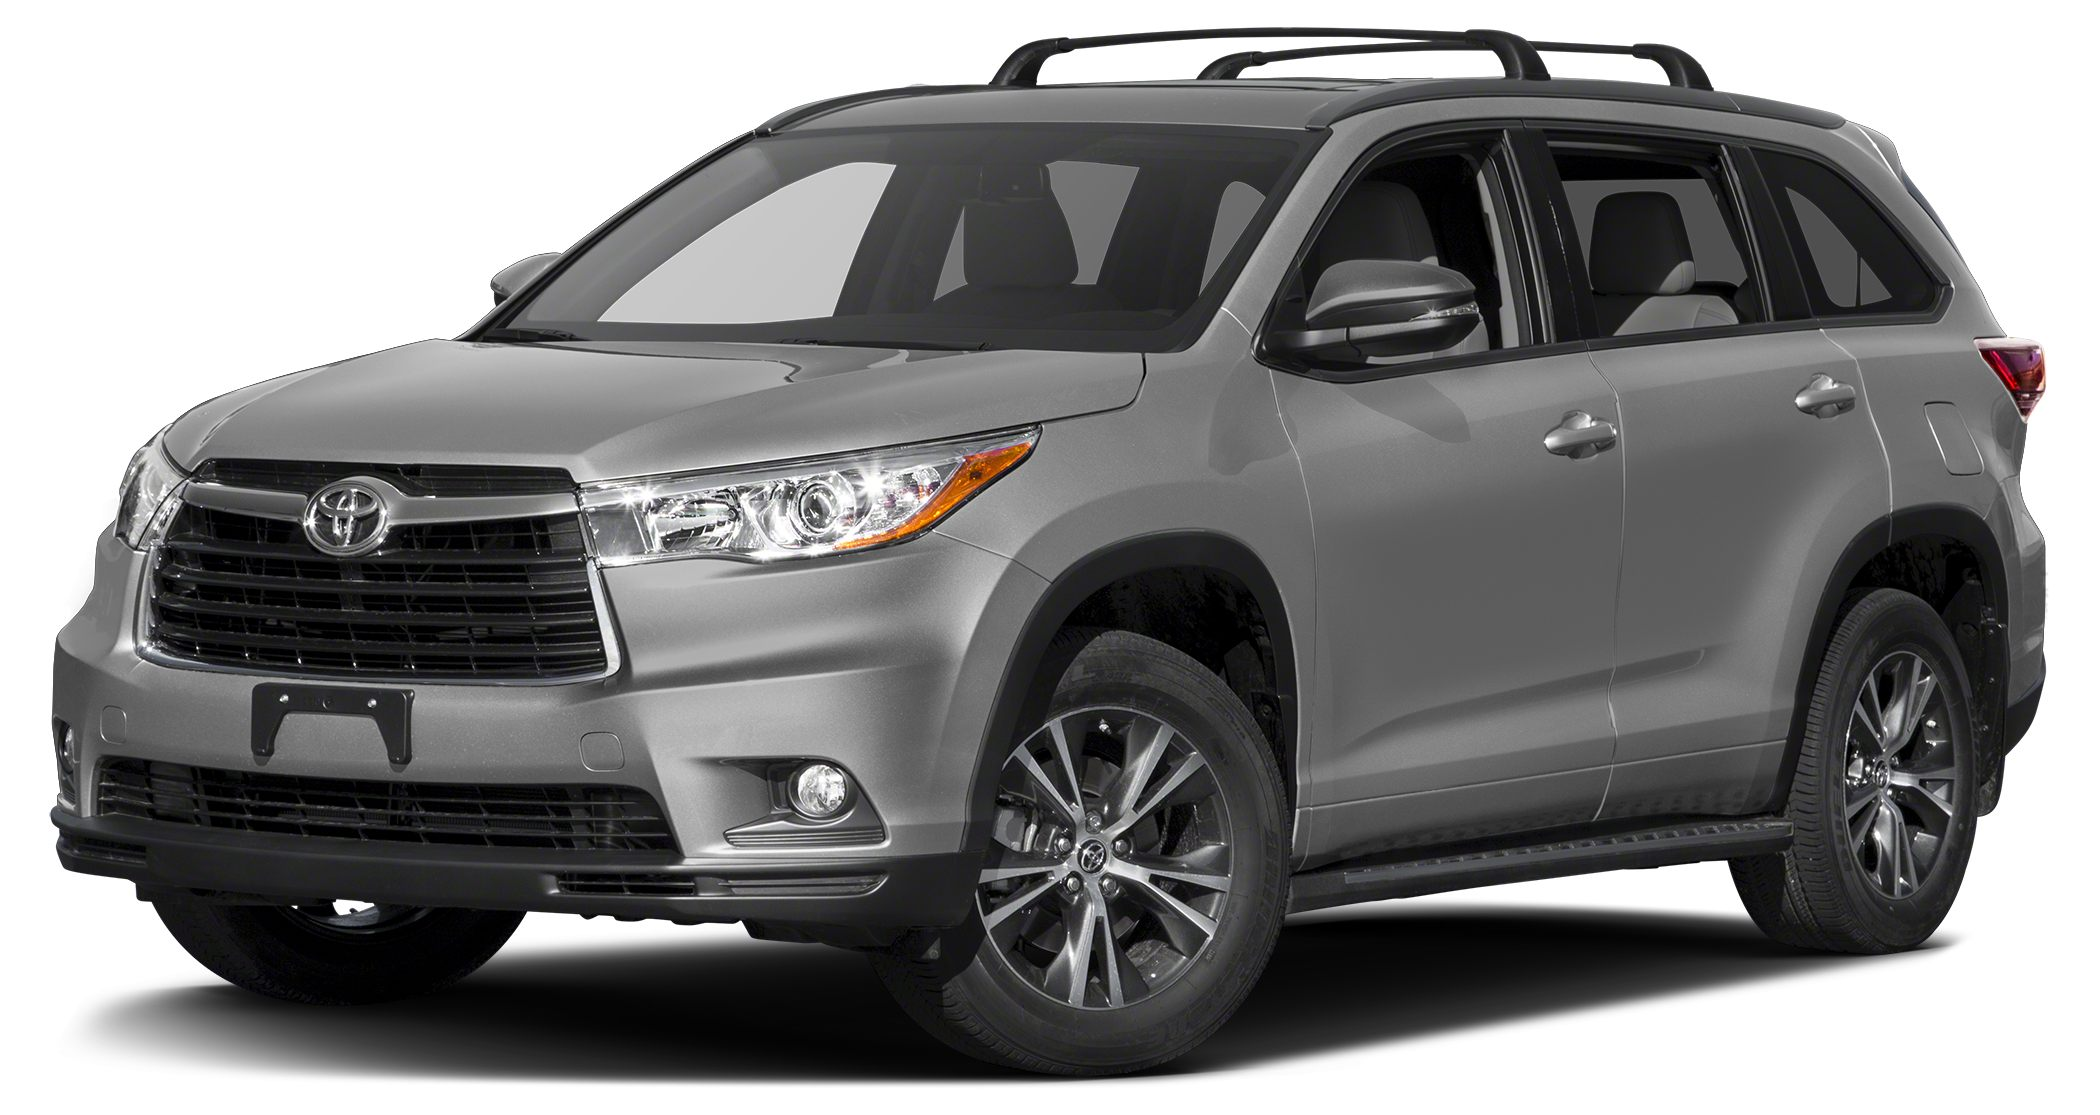 2016 Toyota Highlander XLE Introducing the 2016 Toyota Highlander A comfortable ride with room to